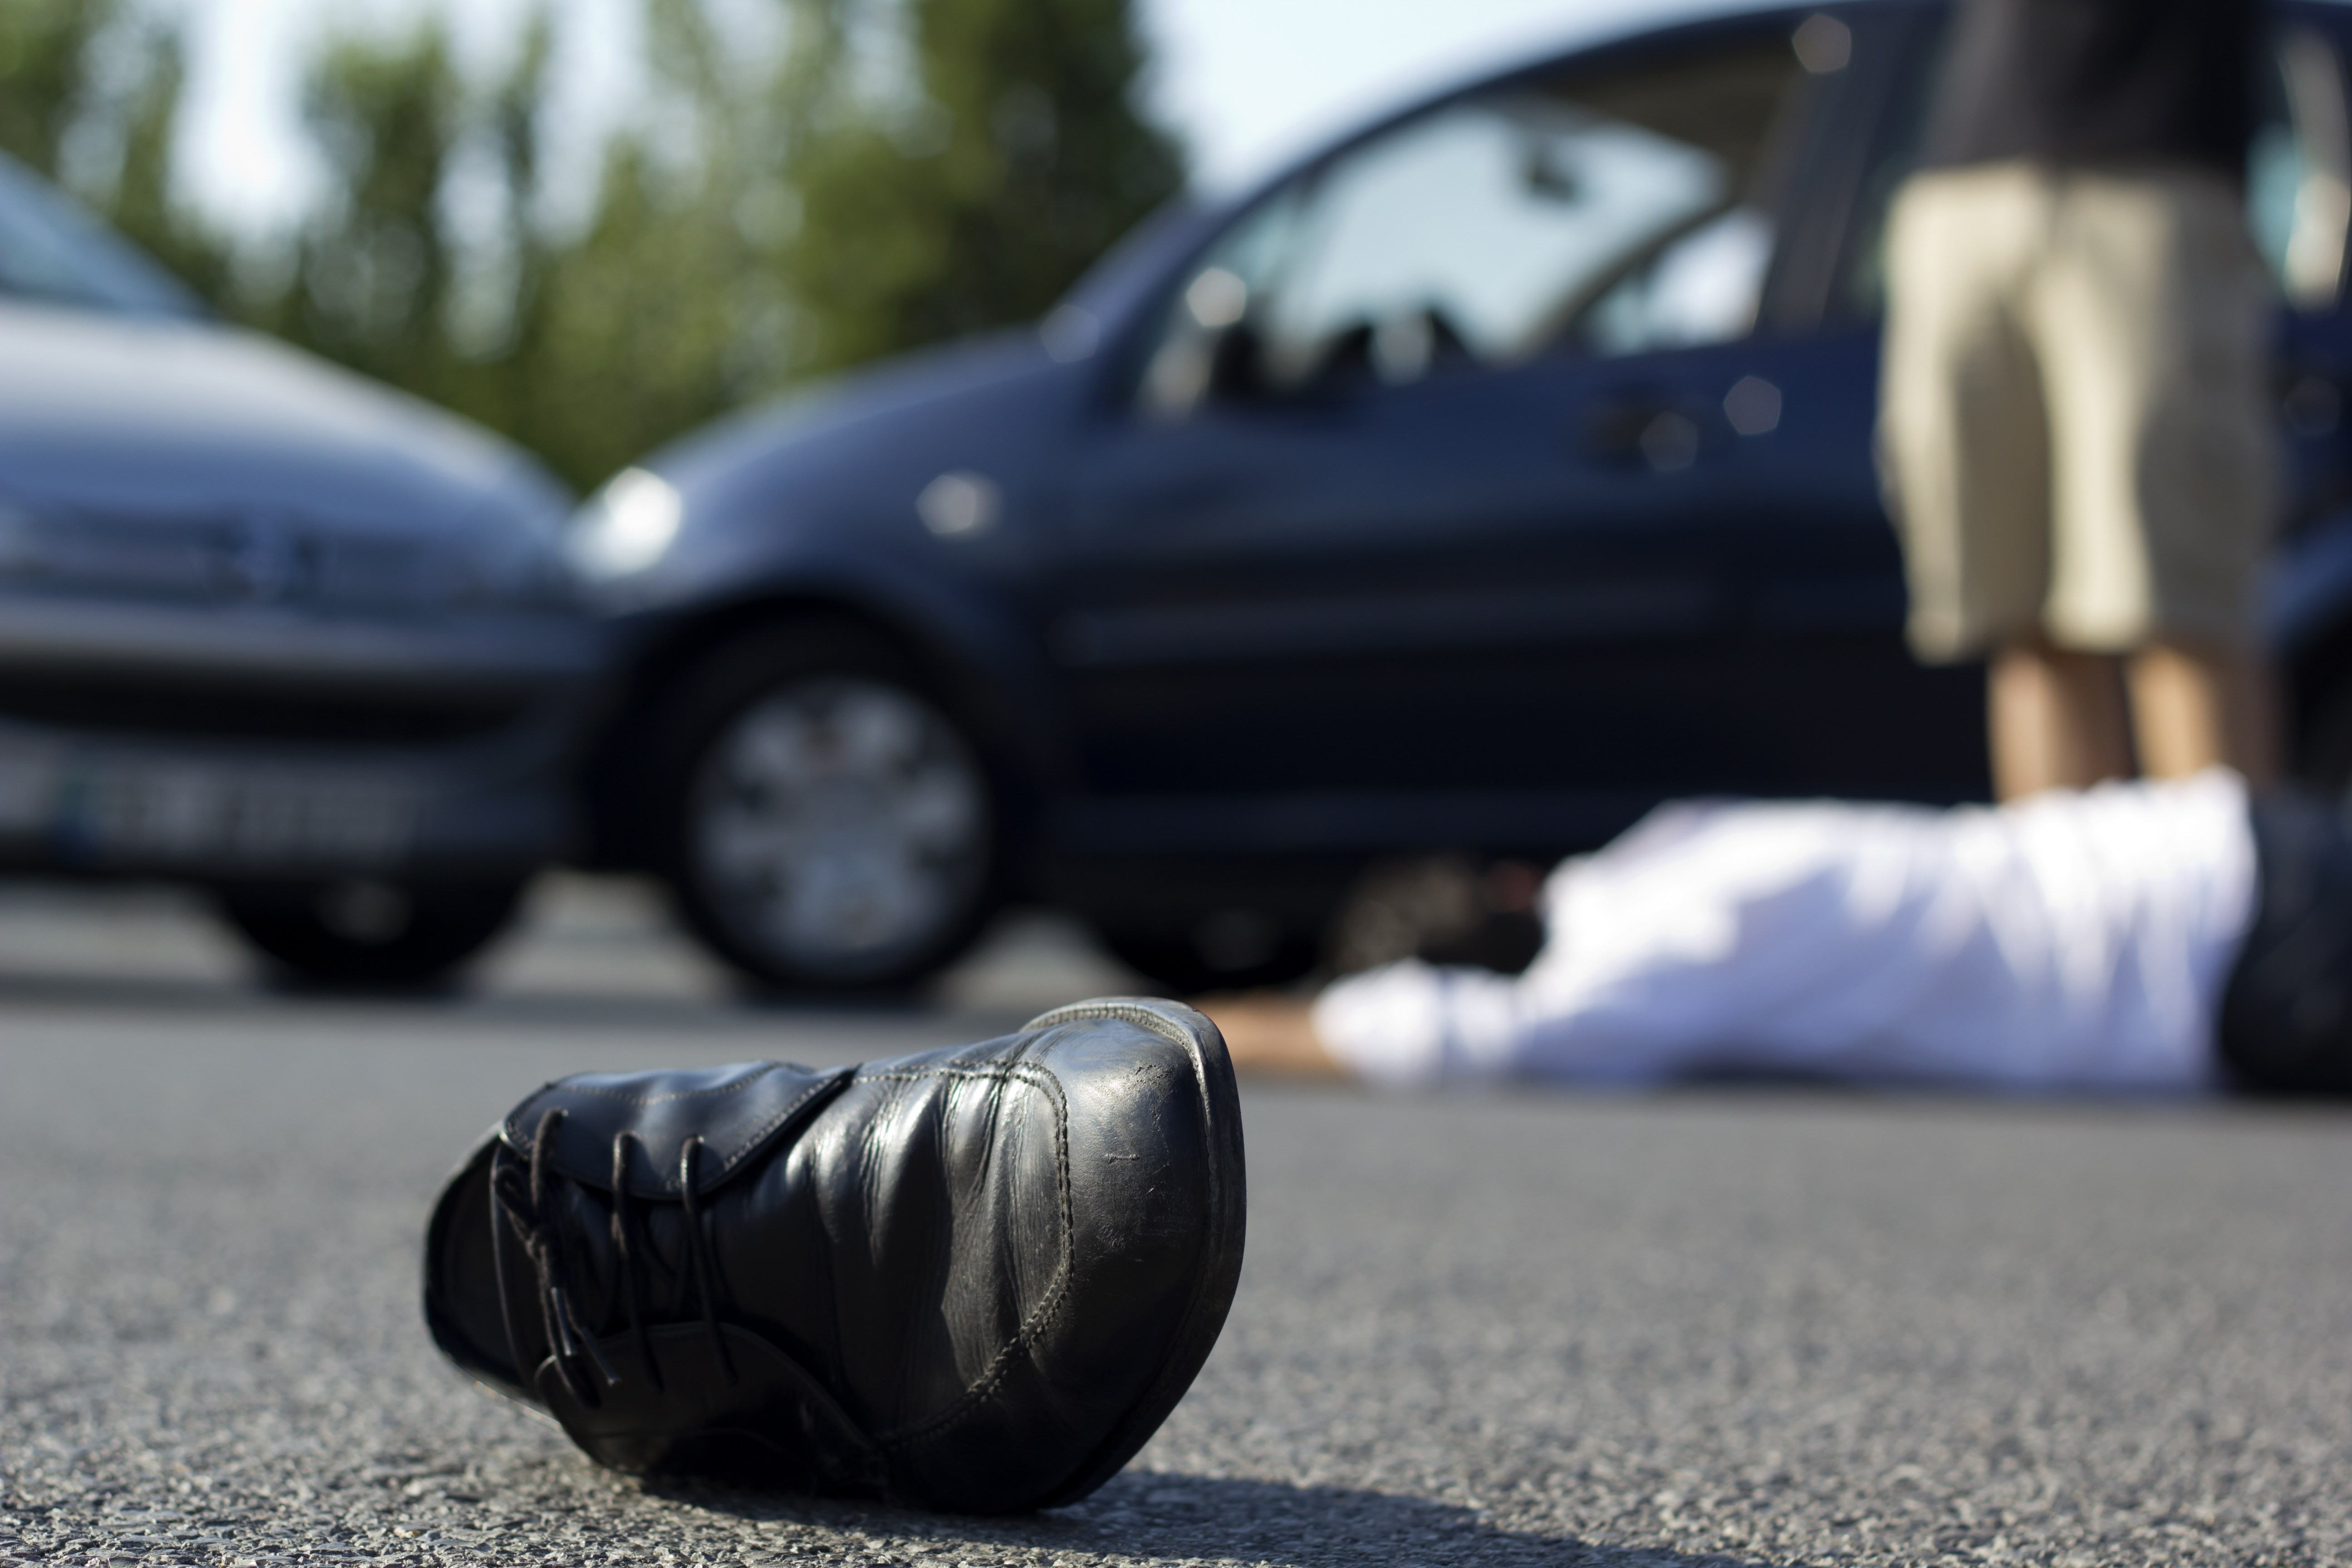 Though there have been instances where people in the capital have stretched a helping hand to save lives, but many road accident victims die because the passers by turn a blind eye